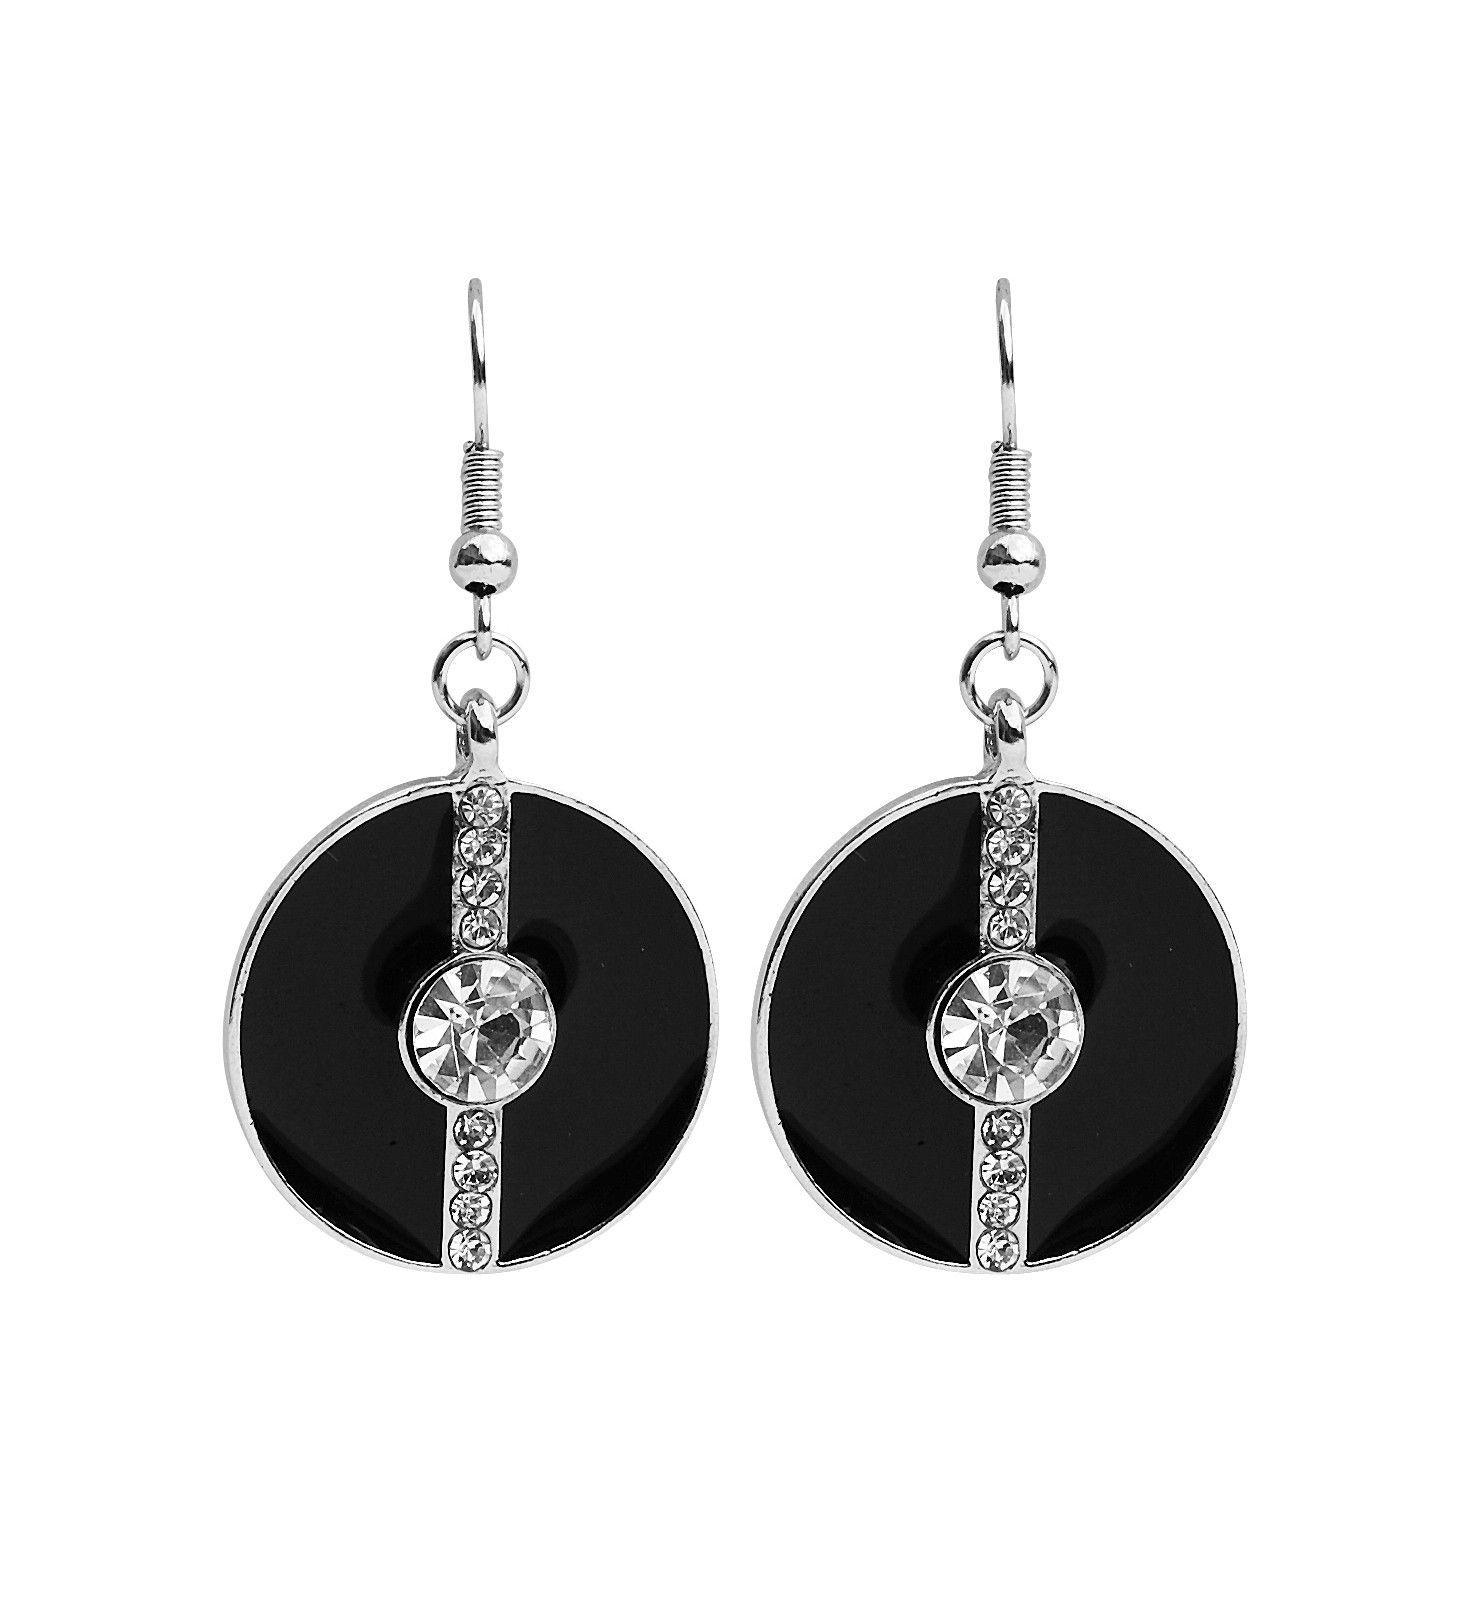 SILVER AND BLACK ENAMEL AND CRYSTAL DROP EARRING